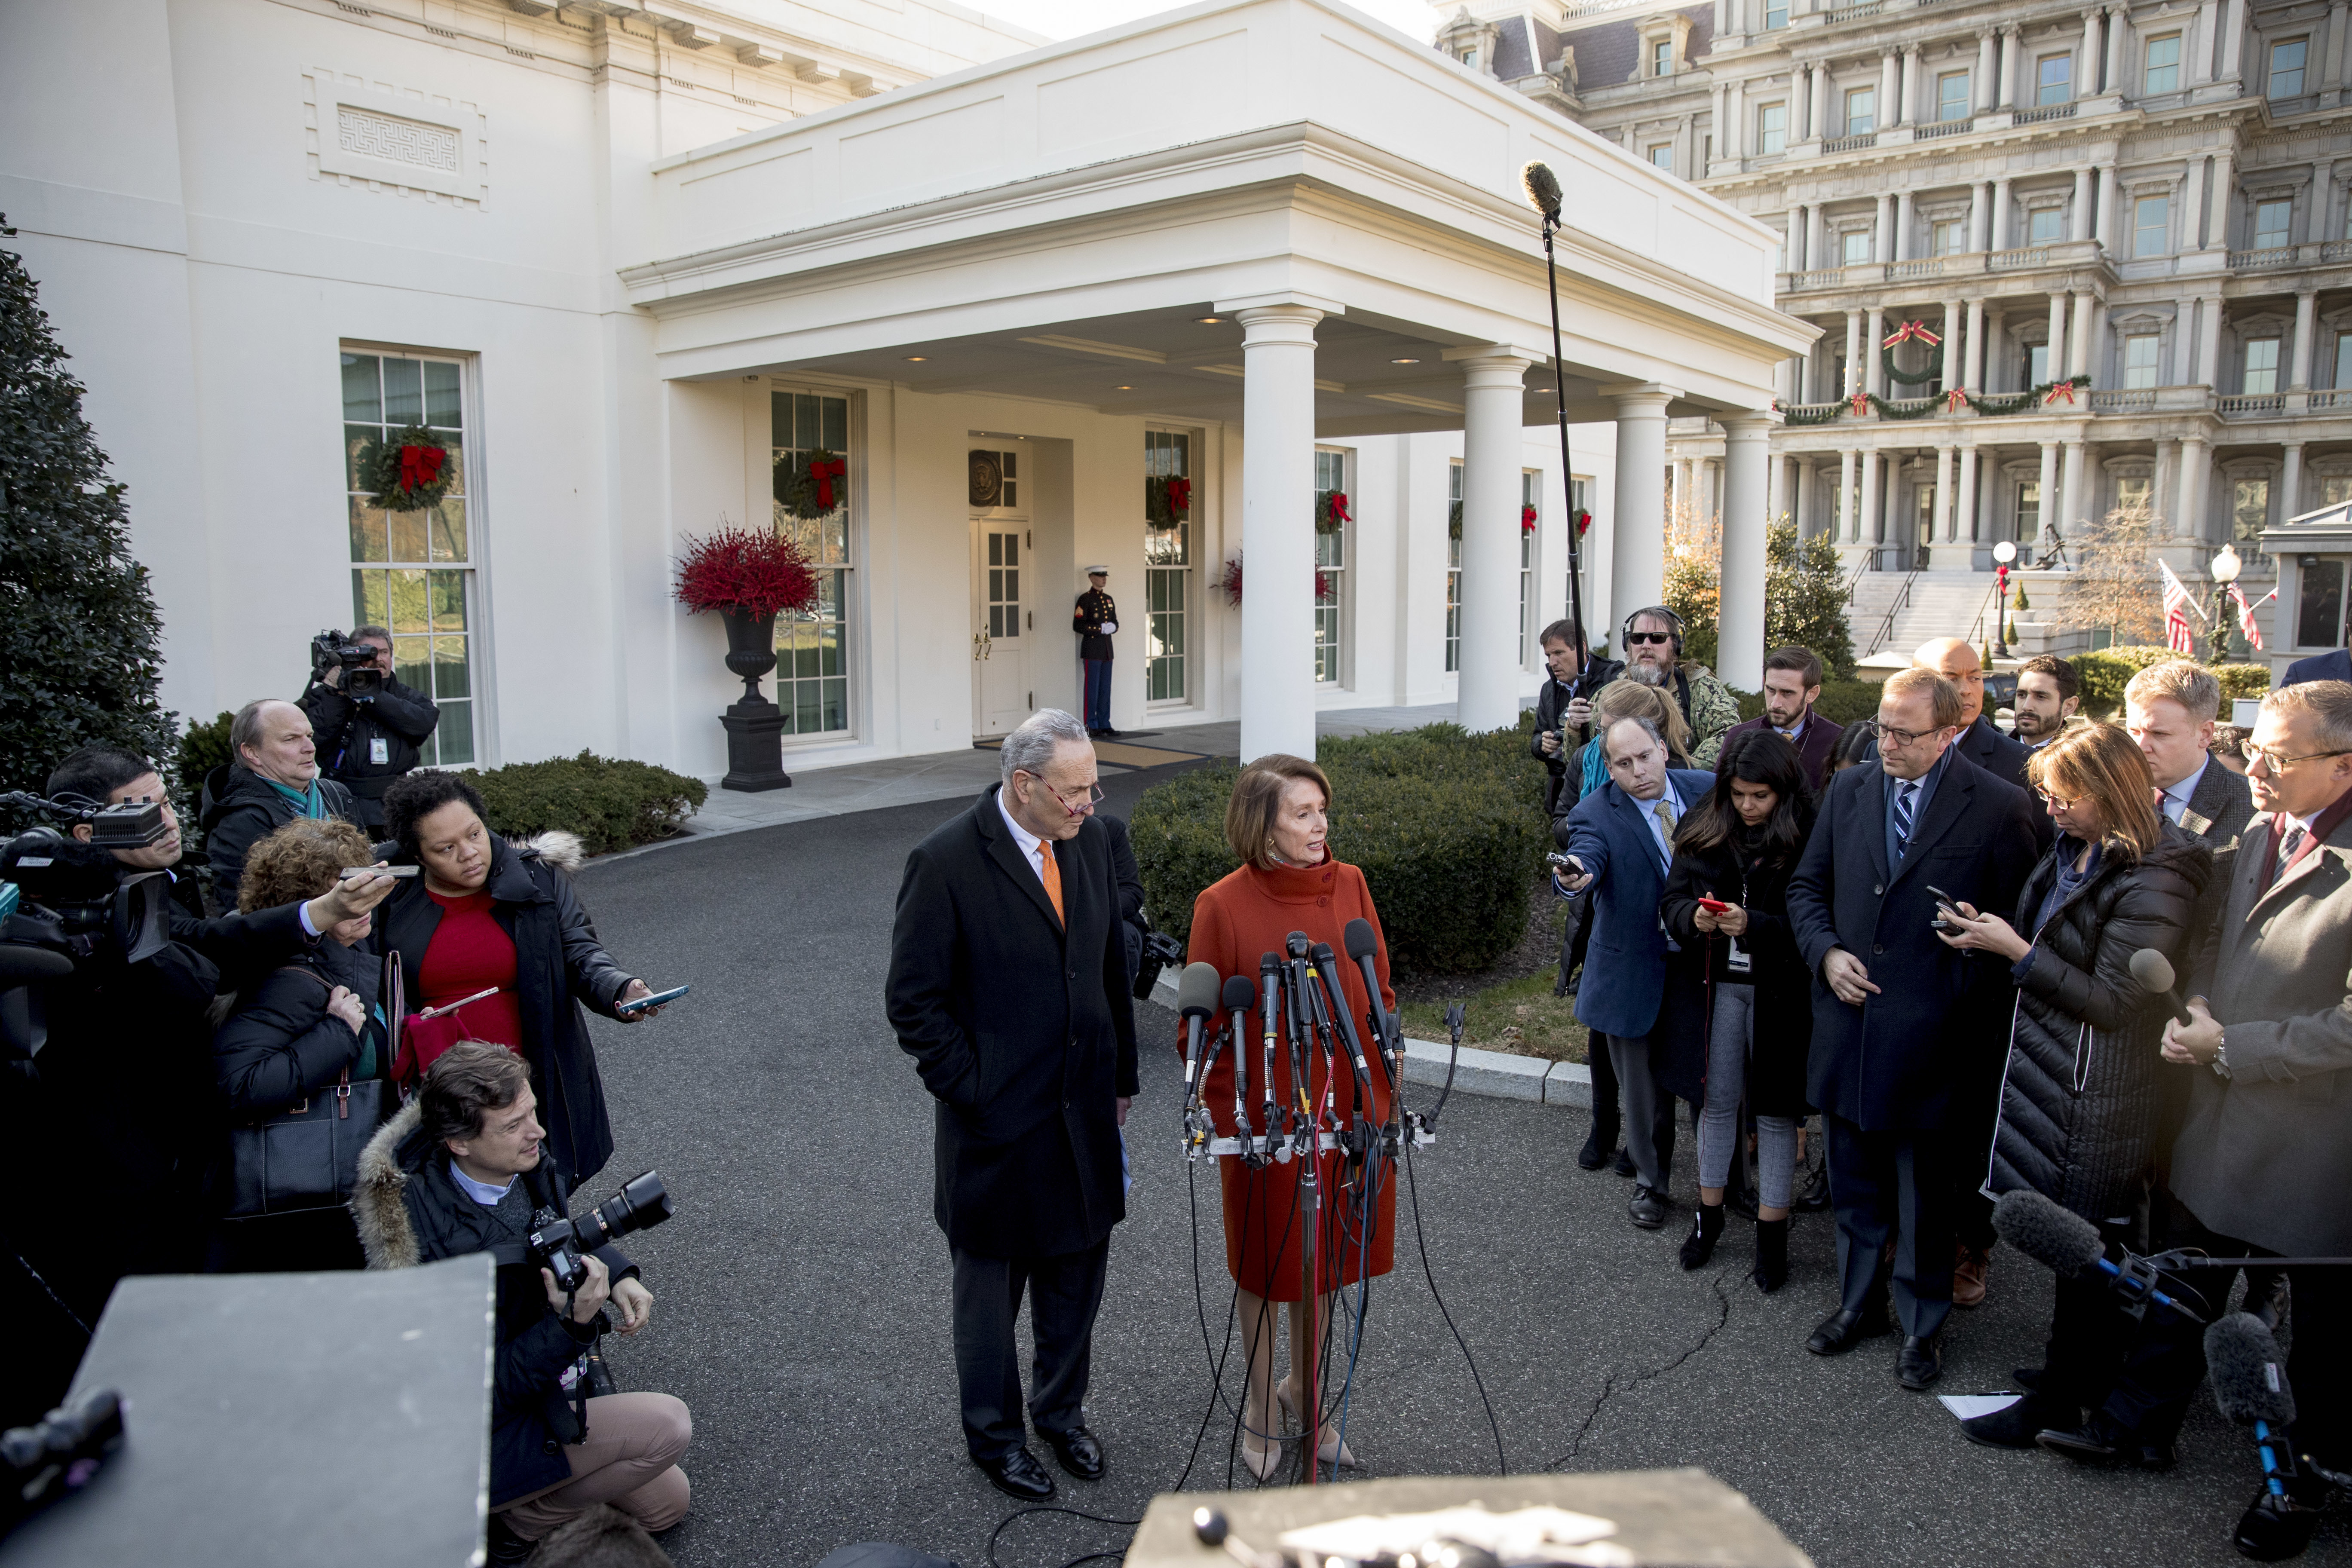 House Minority Leader Nancy Pelosi of Calif., right, accompanied by Senate Minority Leader Sen. Chuck Schumer of N.Y., left, speaks to members of the media outside the West Wing of the White House in Washington, Tuesday, Dec. 11, 2018, following a me...